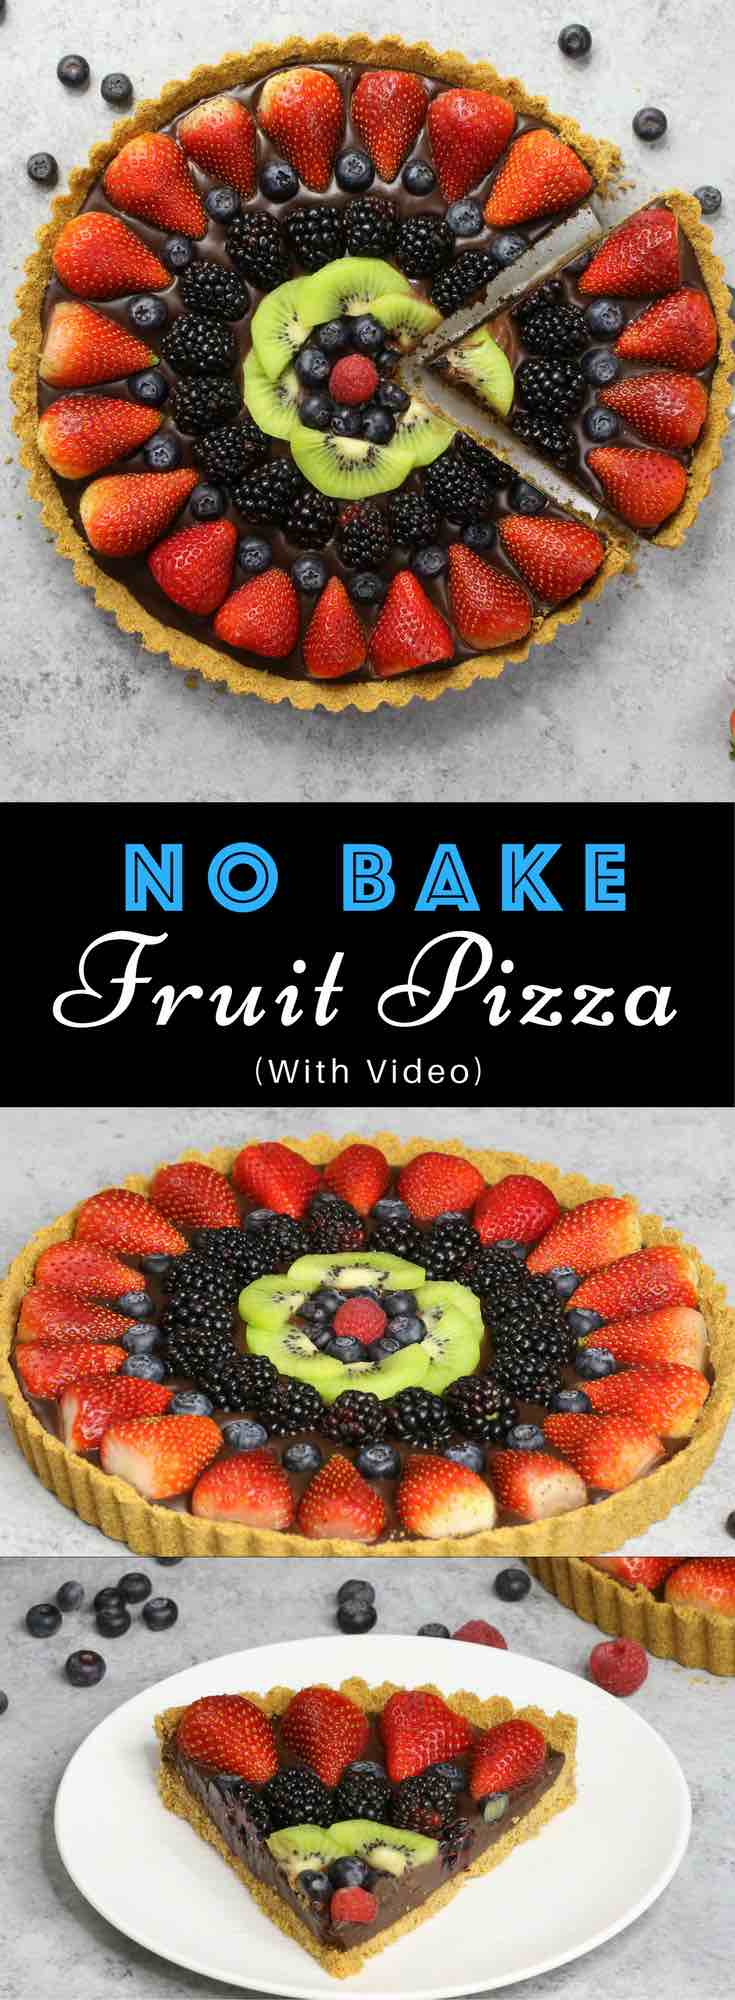 No Bake Fruit Pizza Chocolate Tart – simple and decadent fruit tart that's unbelievably beautiful and delicious. It has a graham cracker crust and smooth creamy chocolate filling, topped with fresh fruits. All you need is a few simple ingredients: graham cracker, butter, chocolate, heavy cream and fresh fruits. A simple dessert you whole family will be obsessed with. Perfect for summer parties. Quick and easy, dessert recipe. vegetarian. Video recipe. | tipbuzz.com